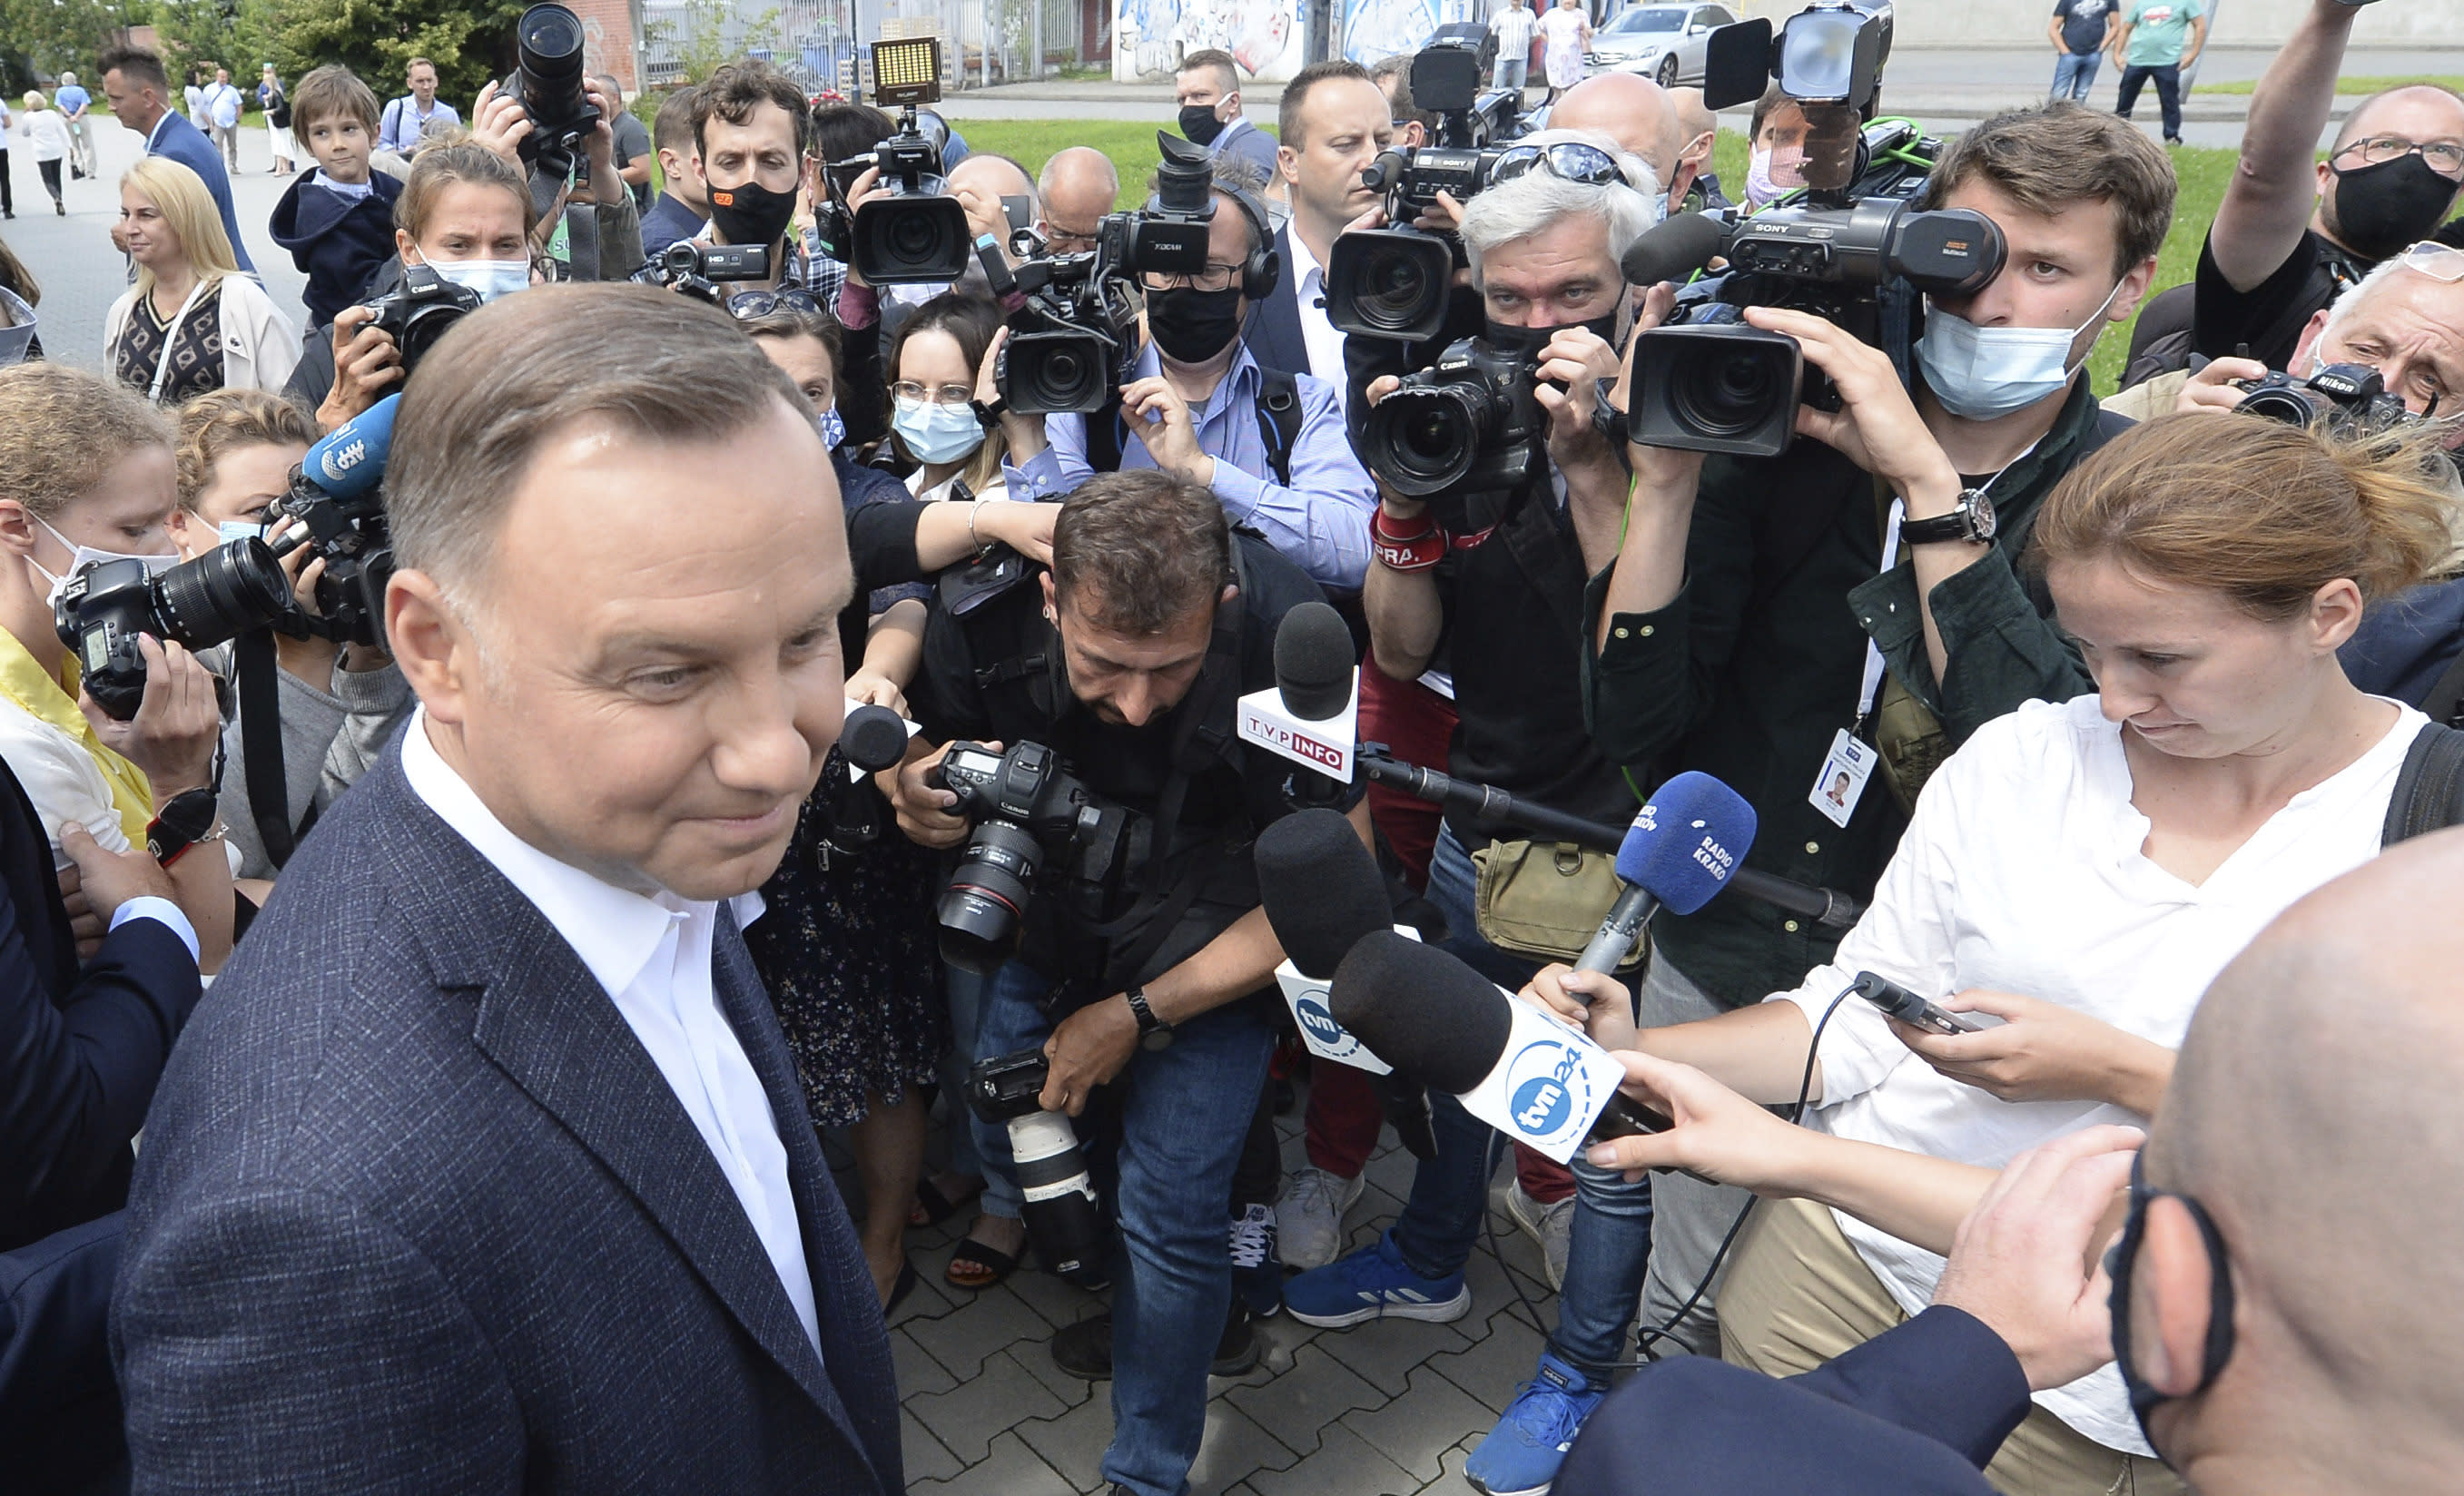 Candidate in Poland's tight presidential election runoff, incumbent President Andrzej Duda talks to reporters after having cast his ballot at a polling station in his hometown of Krakow, Poland, on Sunday, July 12, 2020. Conservative Duda is running against liberal Warsaw Mayor Rafal Trzaskowski and latest opinion polls suggest the race will be decided by a very narrow margin.(AP Photo/Czarek Sokolowski)